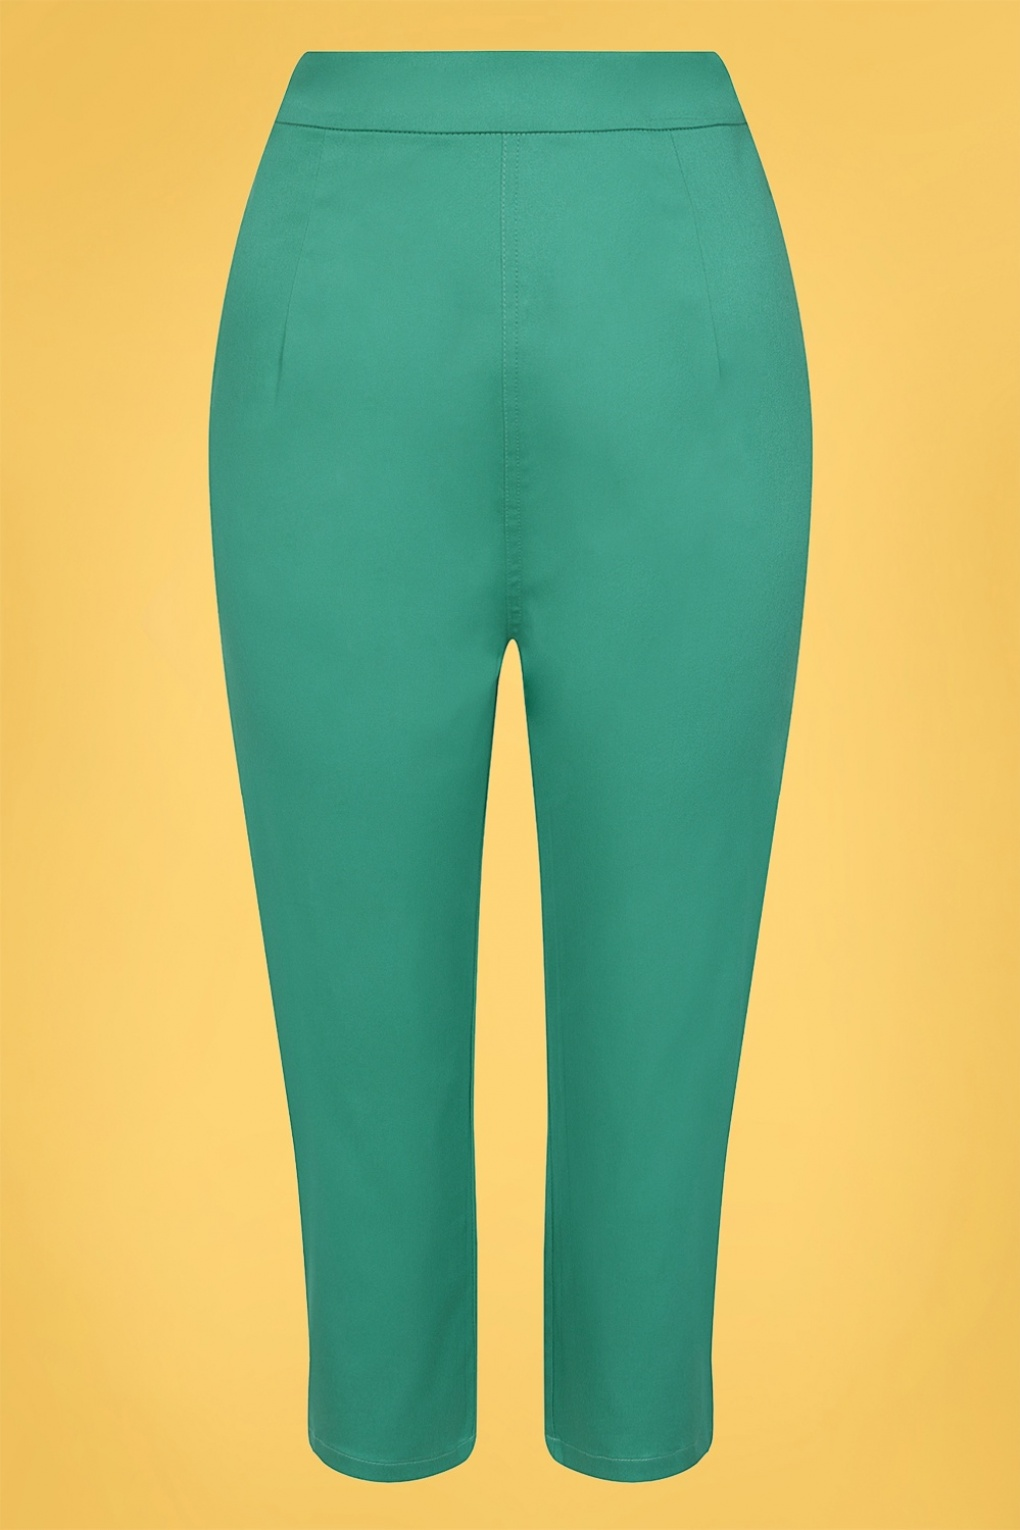 1960s Pants – Top 10 Styles for Women 50s Gracie Classic Cotton Capris in Teal  AT vintagedancer.com